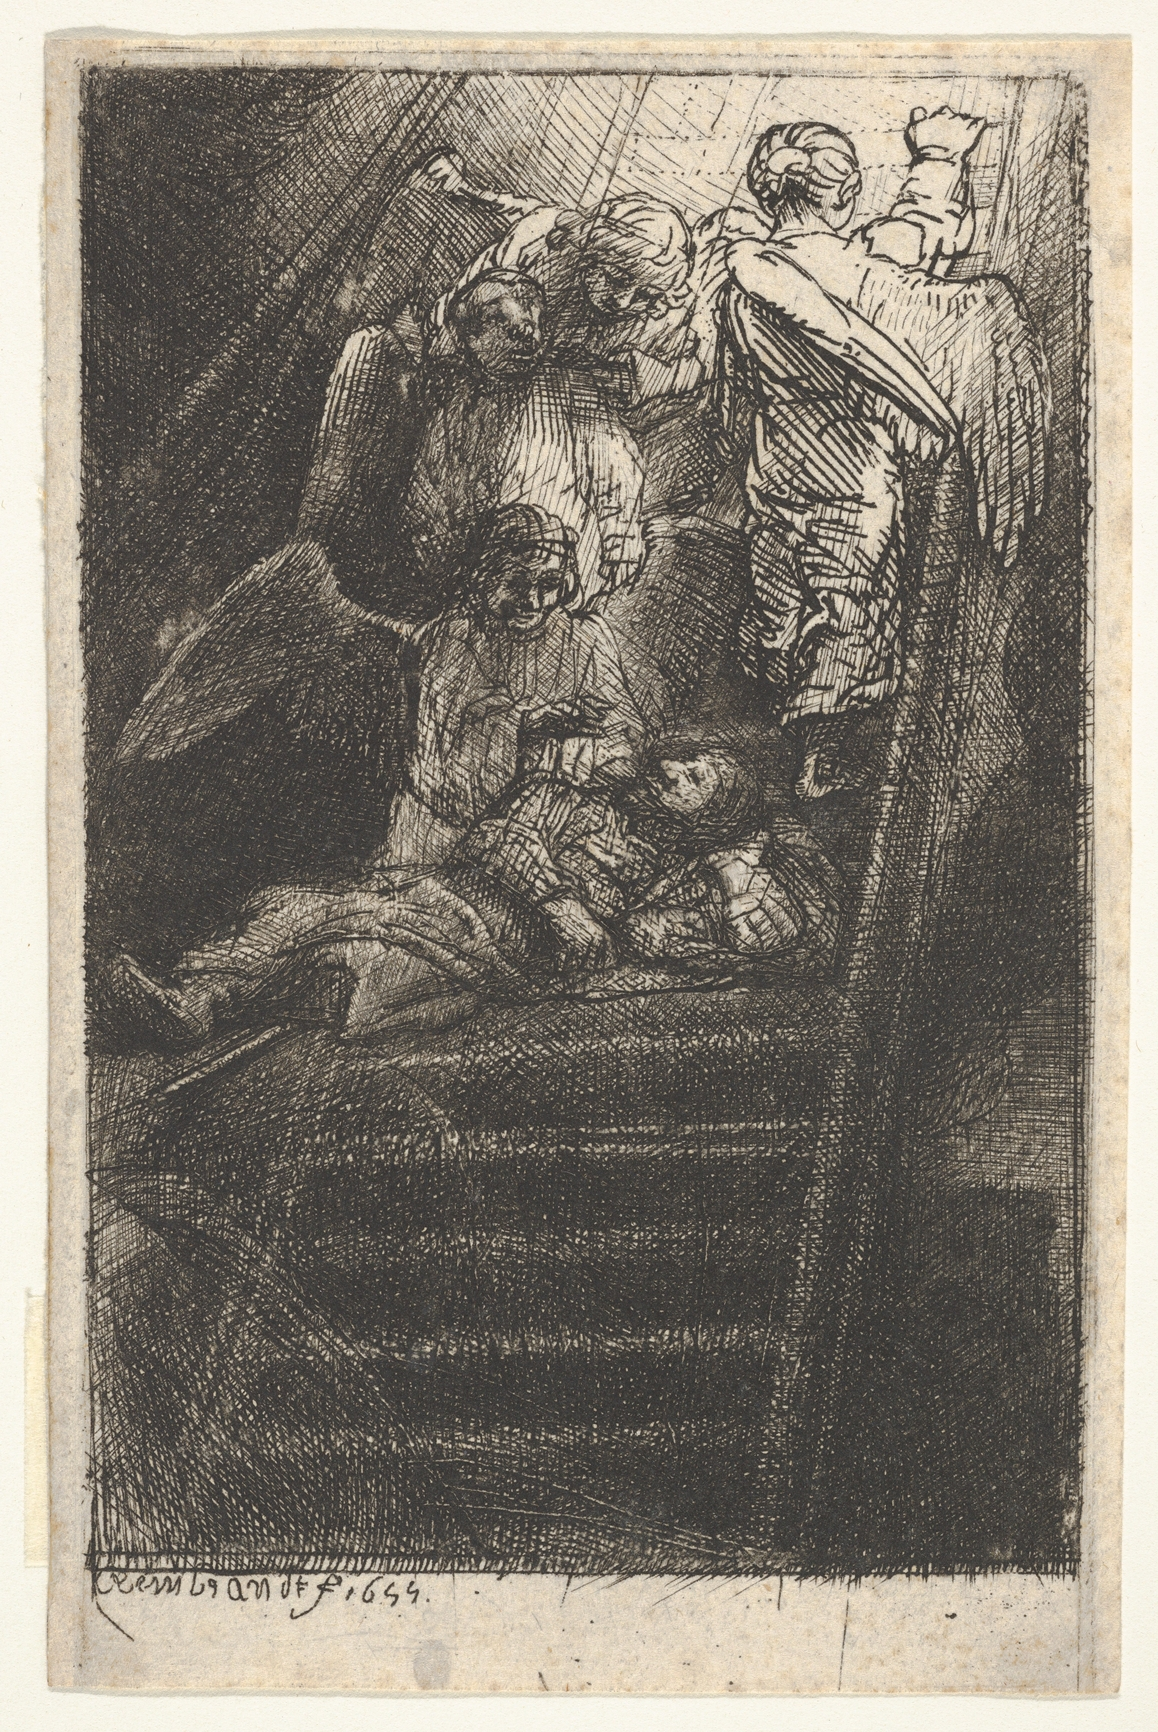 Jacob's Ladder, by Rembrandt (1655)